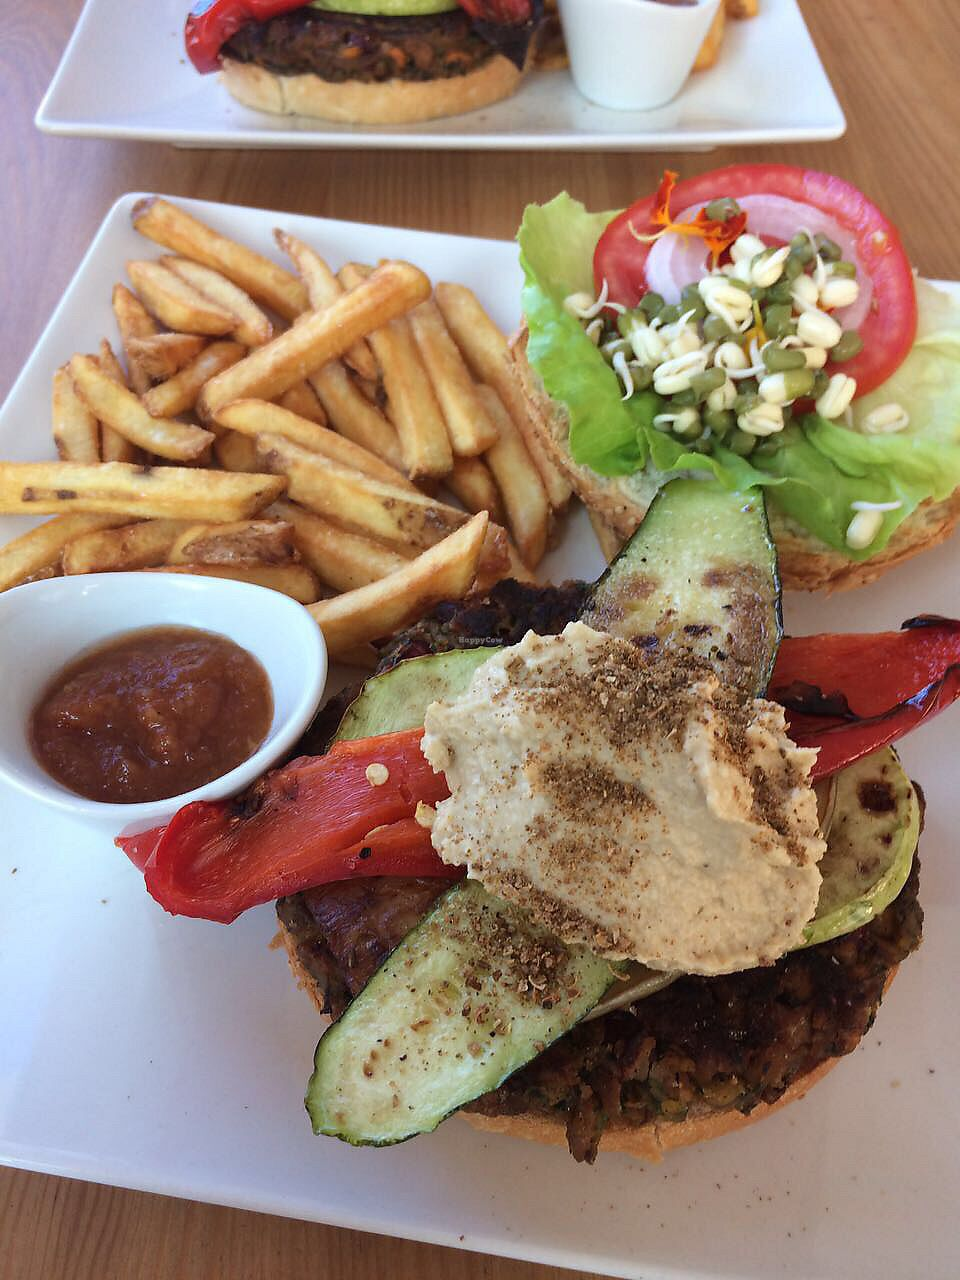 """Photo of Cafe Diem  by <a href=""""/members/profile/veganjazztraveller"""">veganjazztraveller</a> <br/>vegan burger with fries... everything homemade and veeeery yummy <br/> July 23, 2017  - <a href='/contact/abuse/image/96717/283624'>Report</a>"""